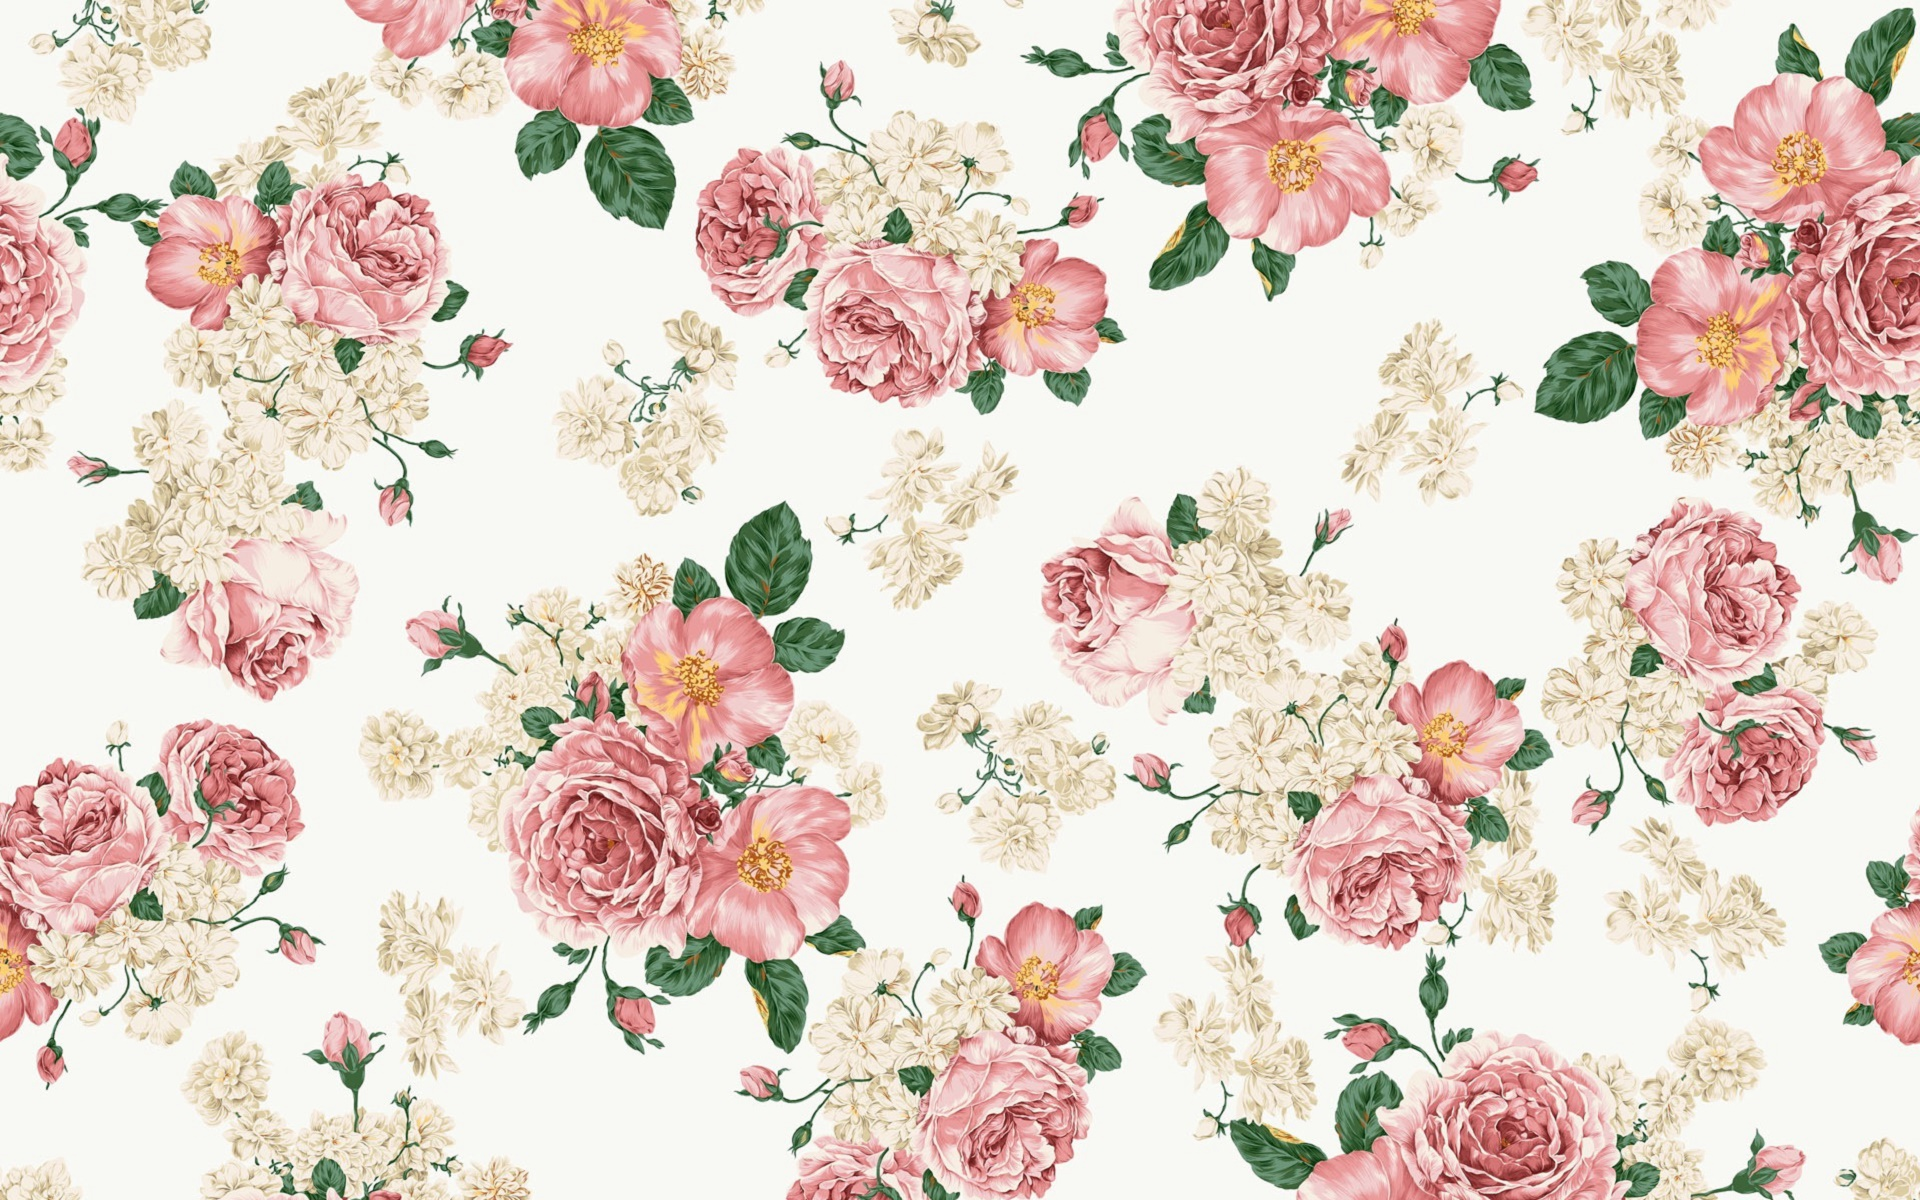 Vintage wallpaper flowers  Vintage Wallpaper Flowers | pecand.com